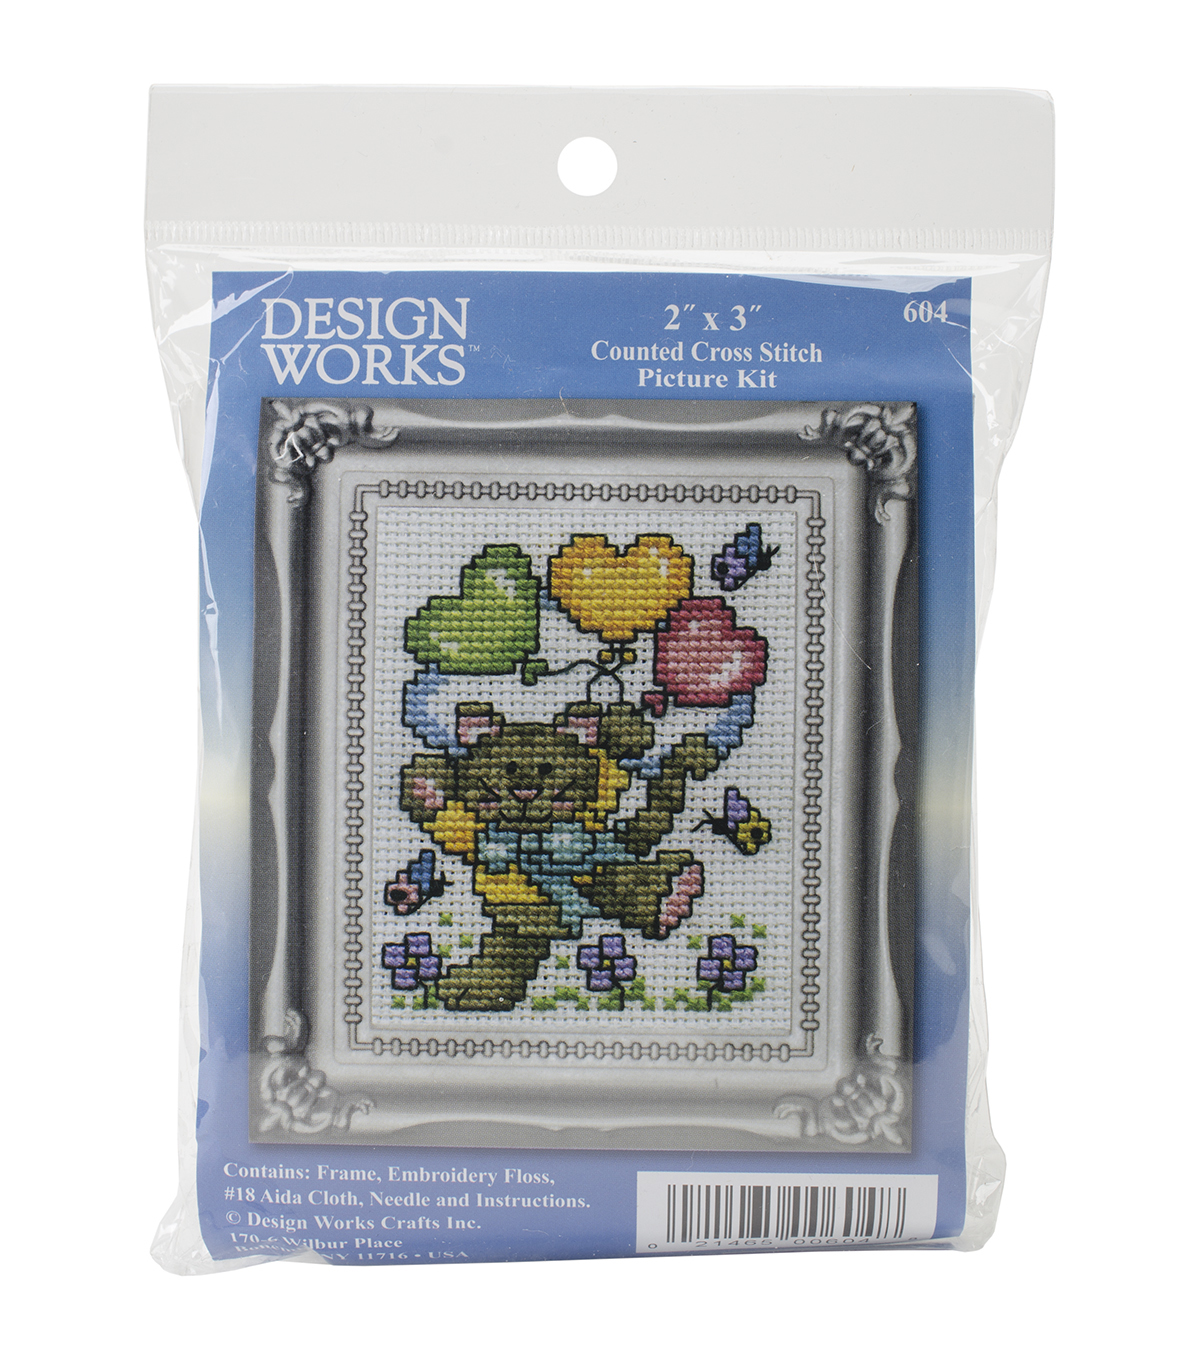 Design Works Balloon Cat Counted Cross Stitch Kit